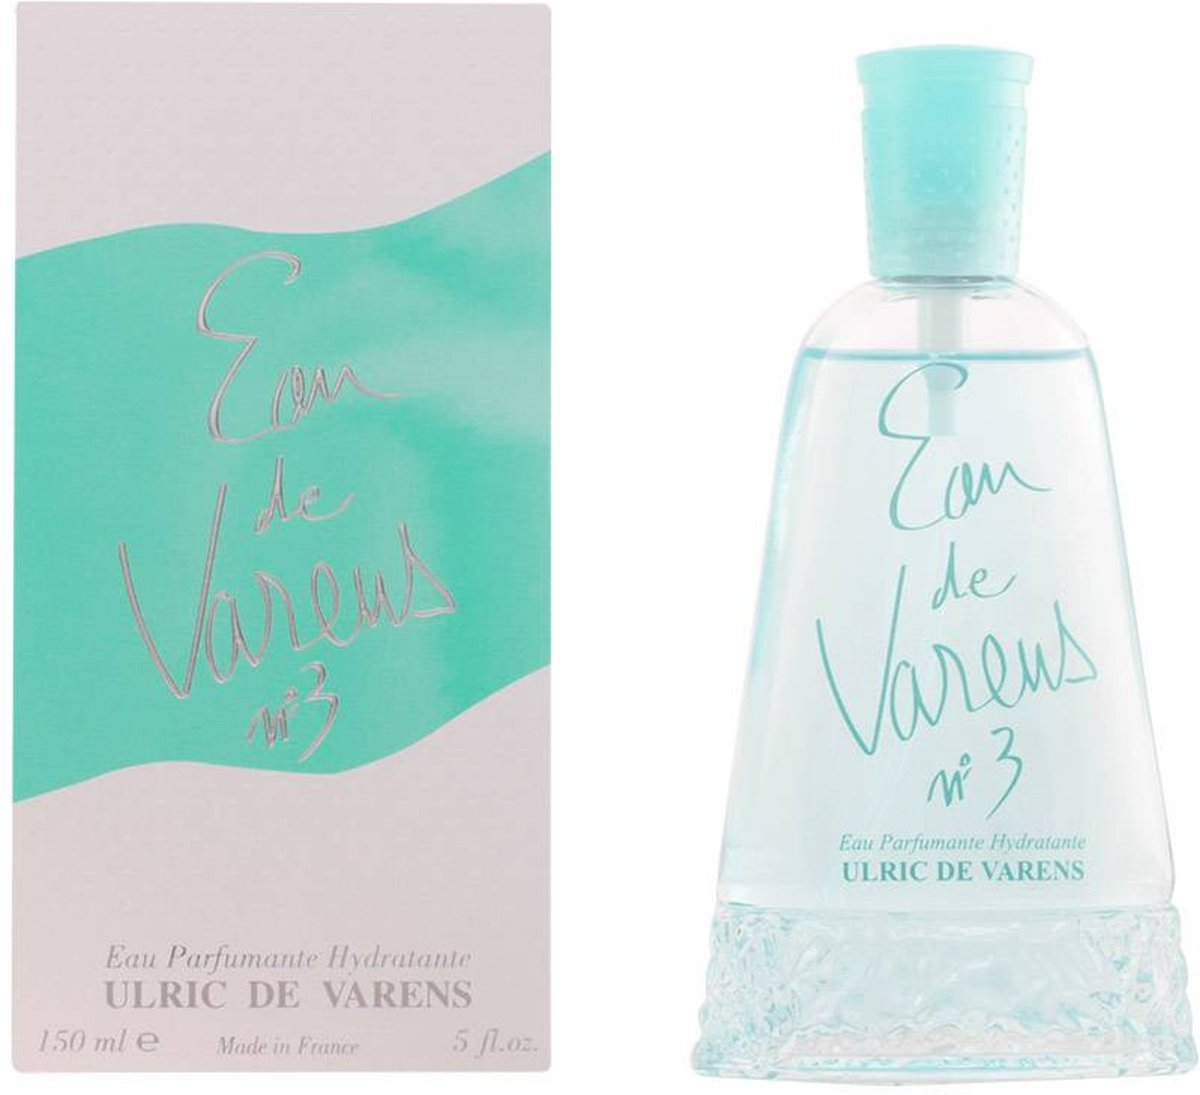 EAU DE VARENS Nº3 verde eau de toilette spray 150 ml